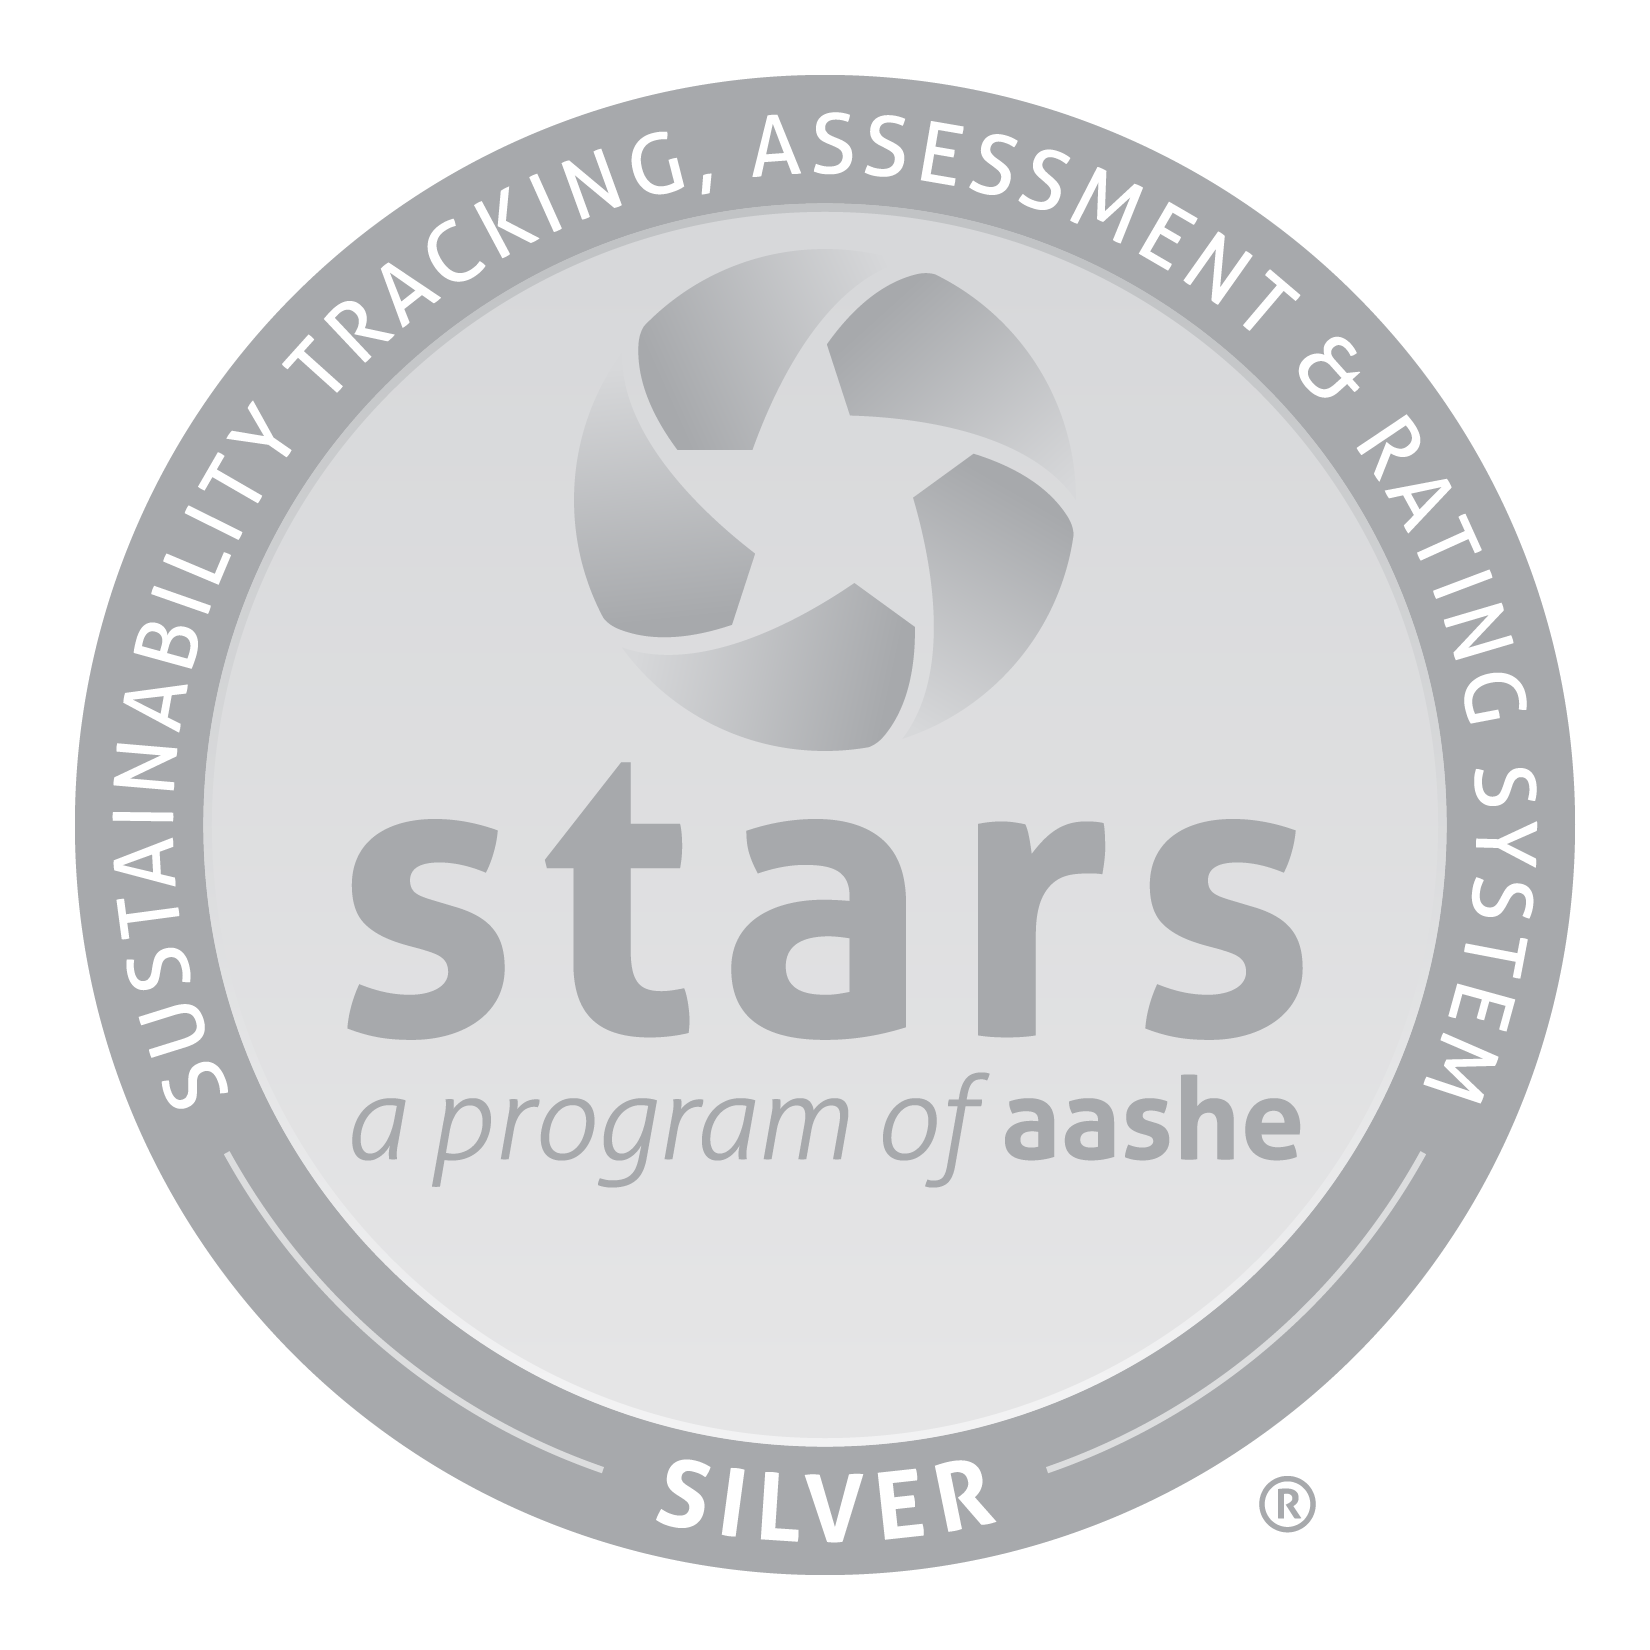 STARS-Silver Rating